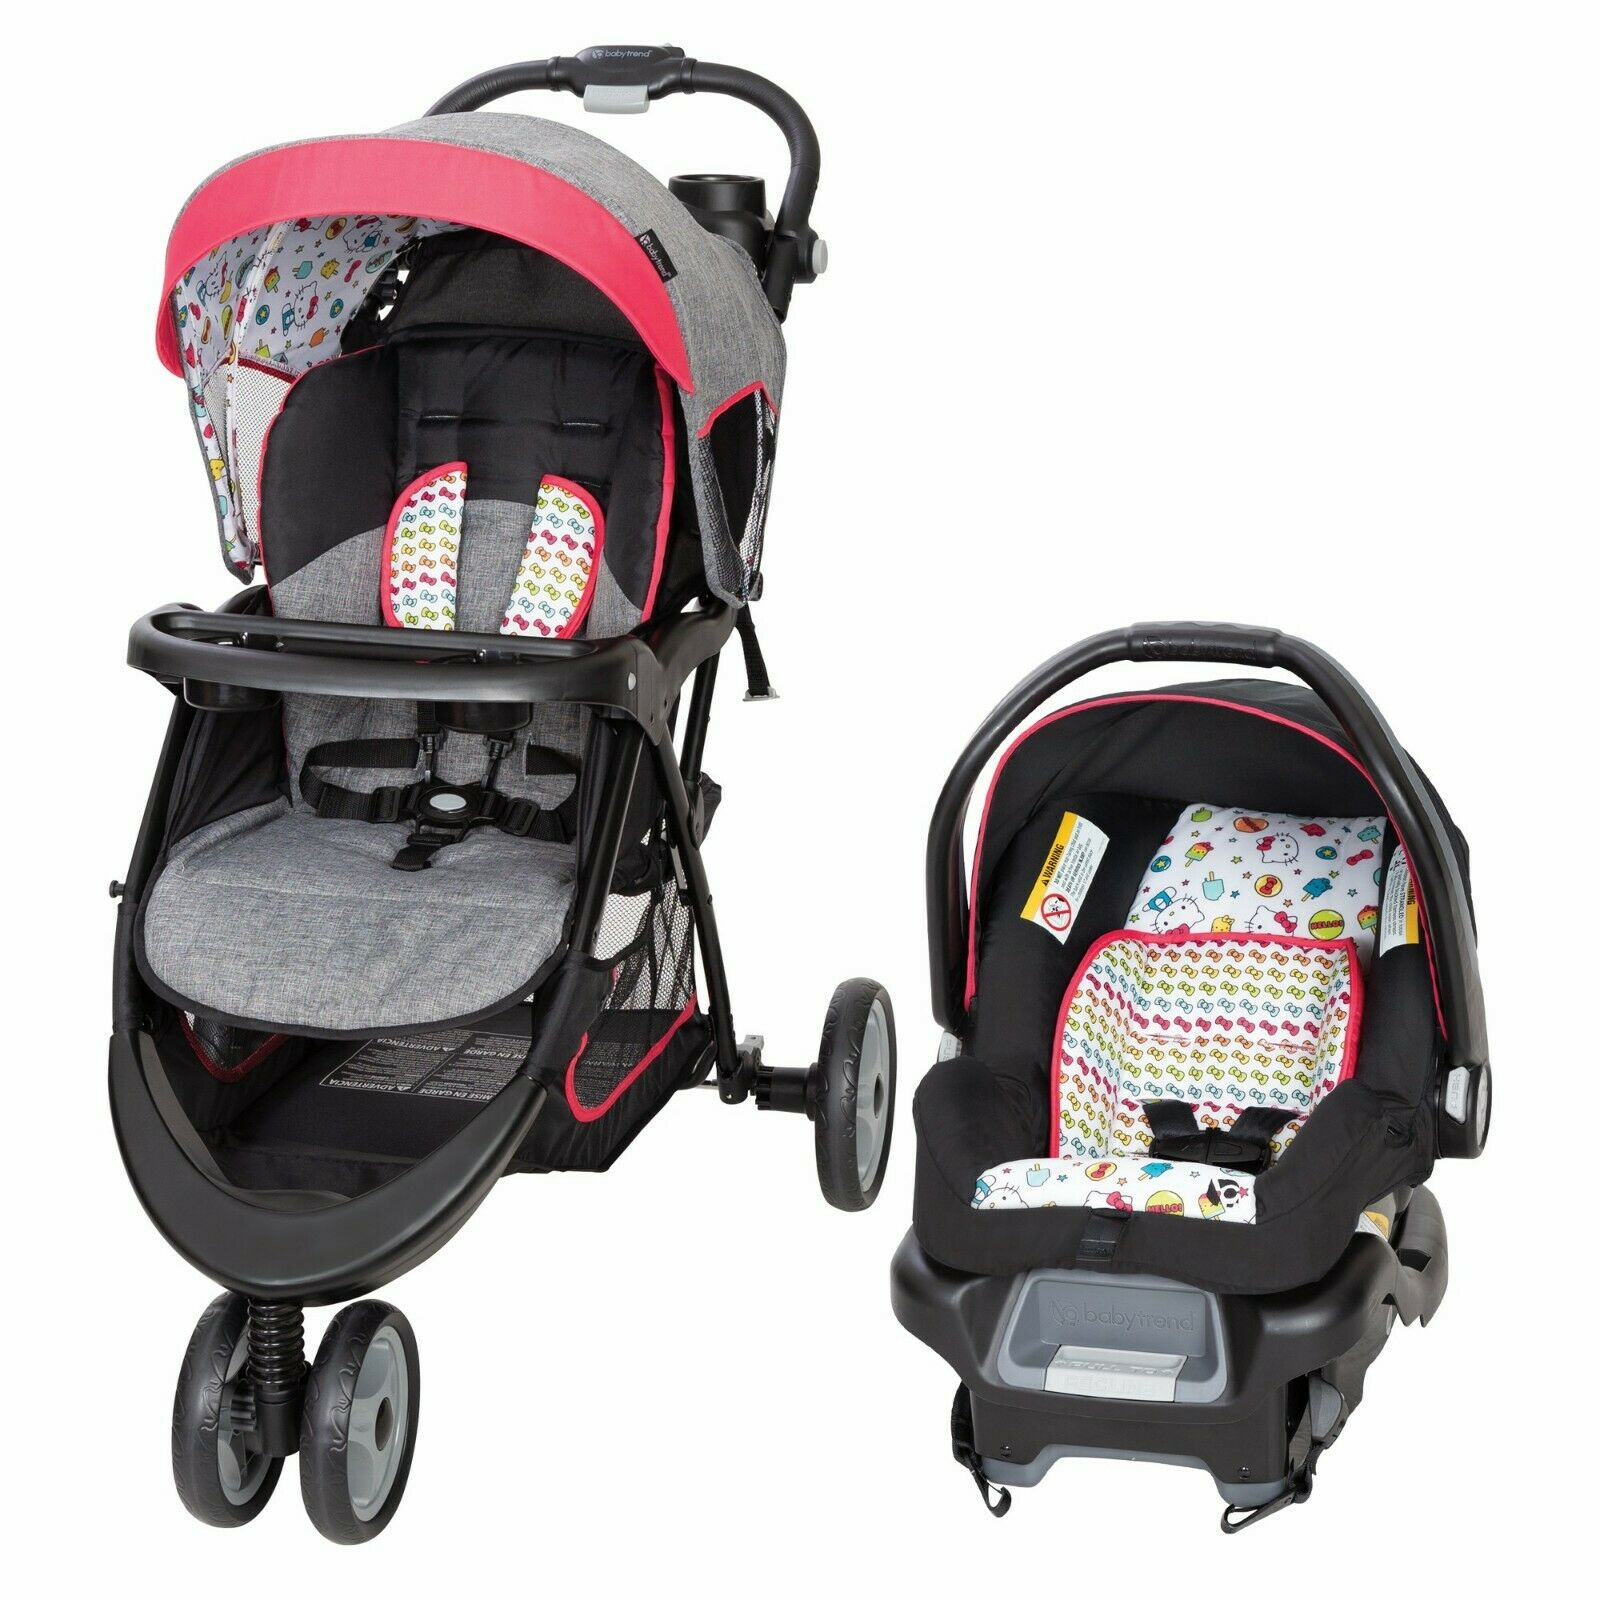 Baby Trend Stroller with Car Seat EZ Ride 5 Travel System He